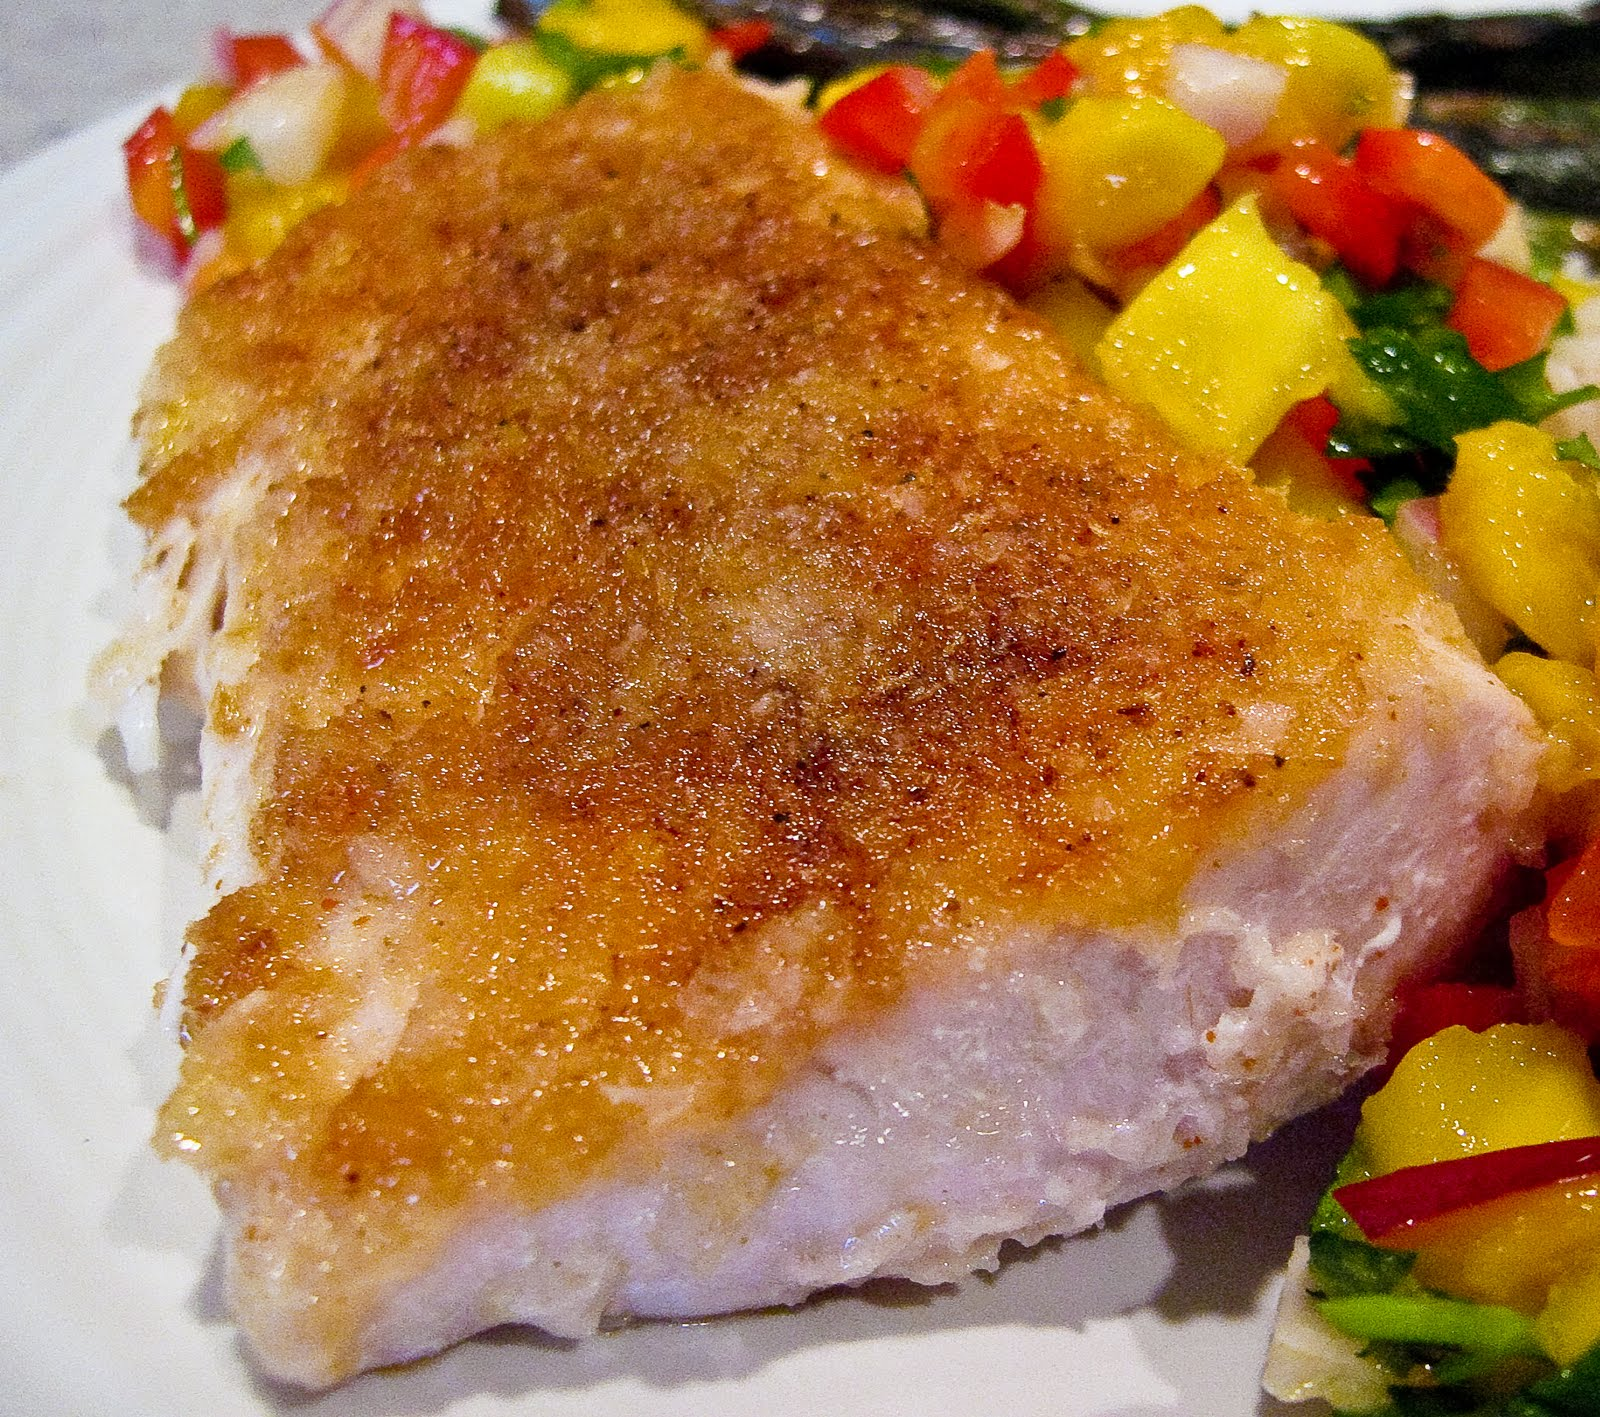 Seared Panko Crusted Mahi Mahi with Mango Salsa | The Spiced Life